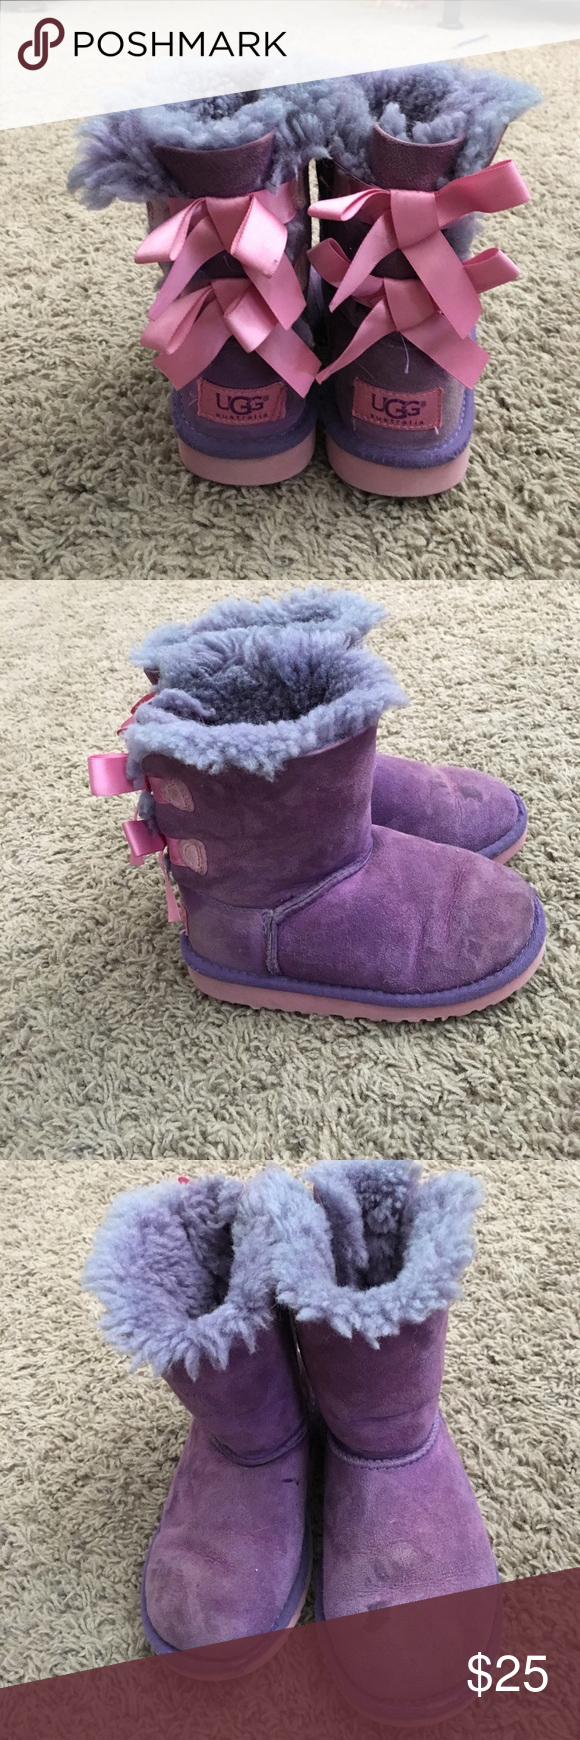 Cute toddler Ugg boots Cute purple Ugg boots with 2 bows in back some signs of use and small stain on front GUC UGG Shoes Boots